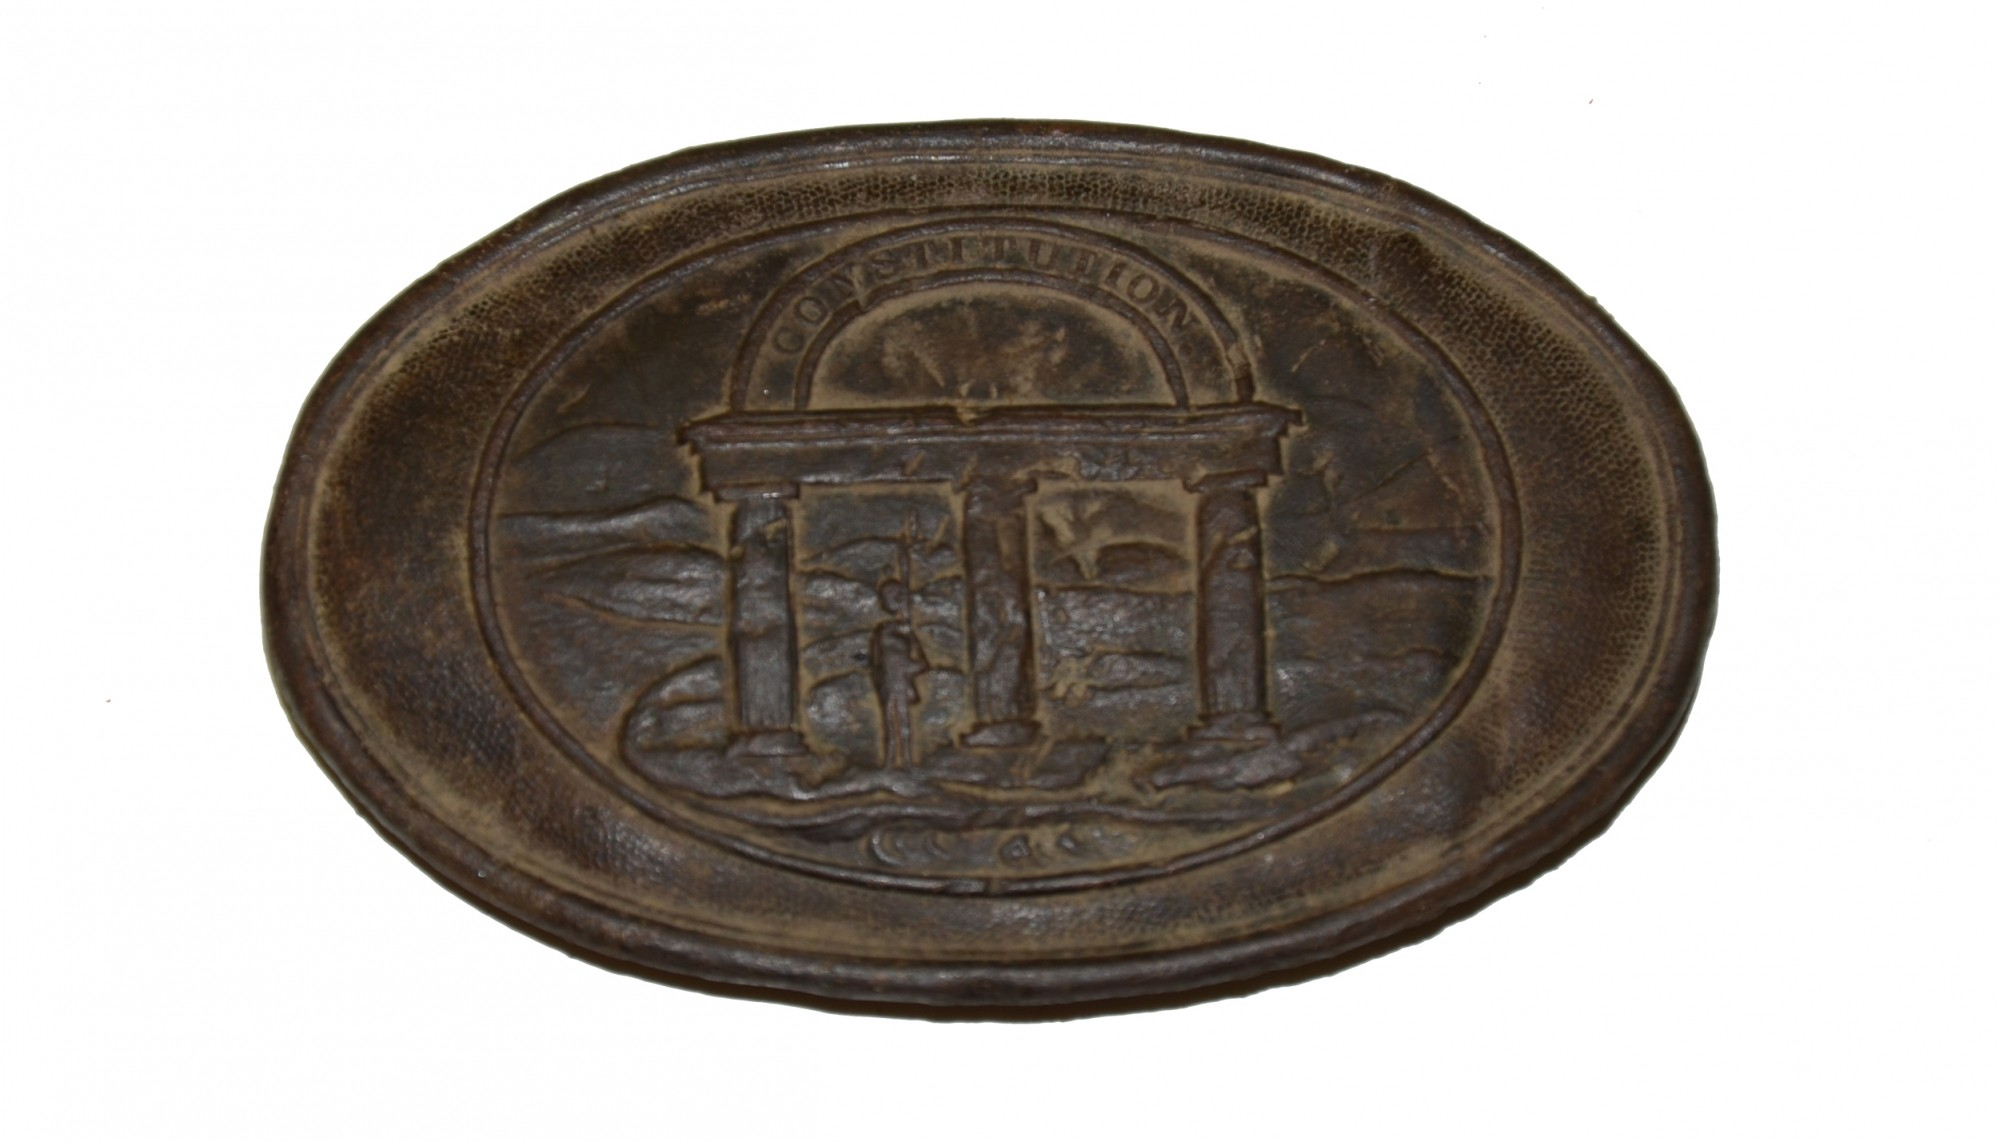 OVAL GEORGIA STATE SEAL BELT PLATE